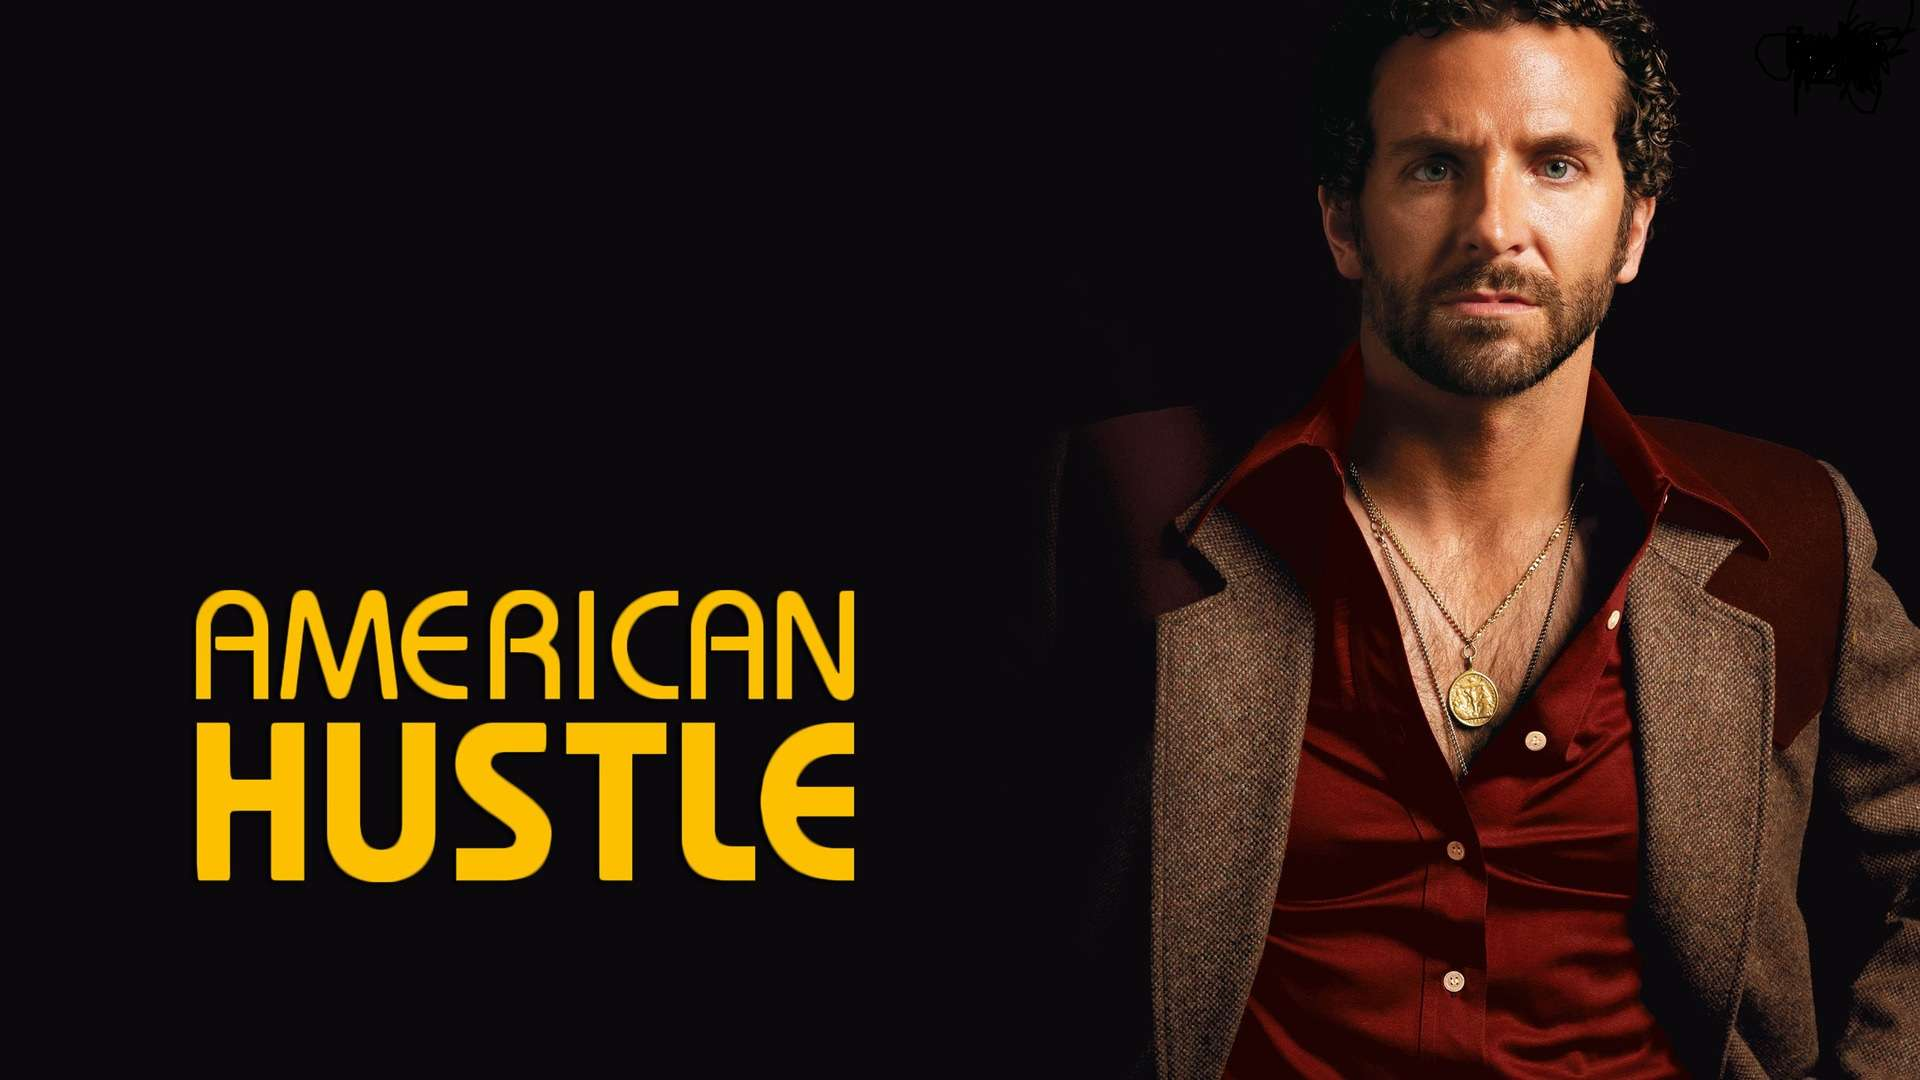 Best Picture Movie Reviews: American Hustle